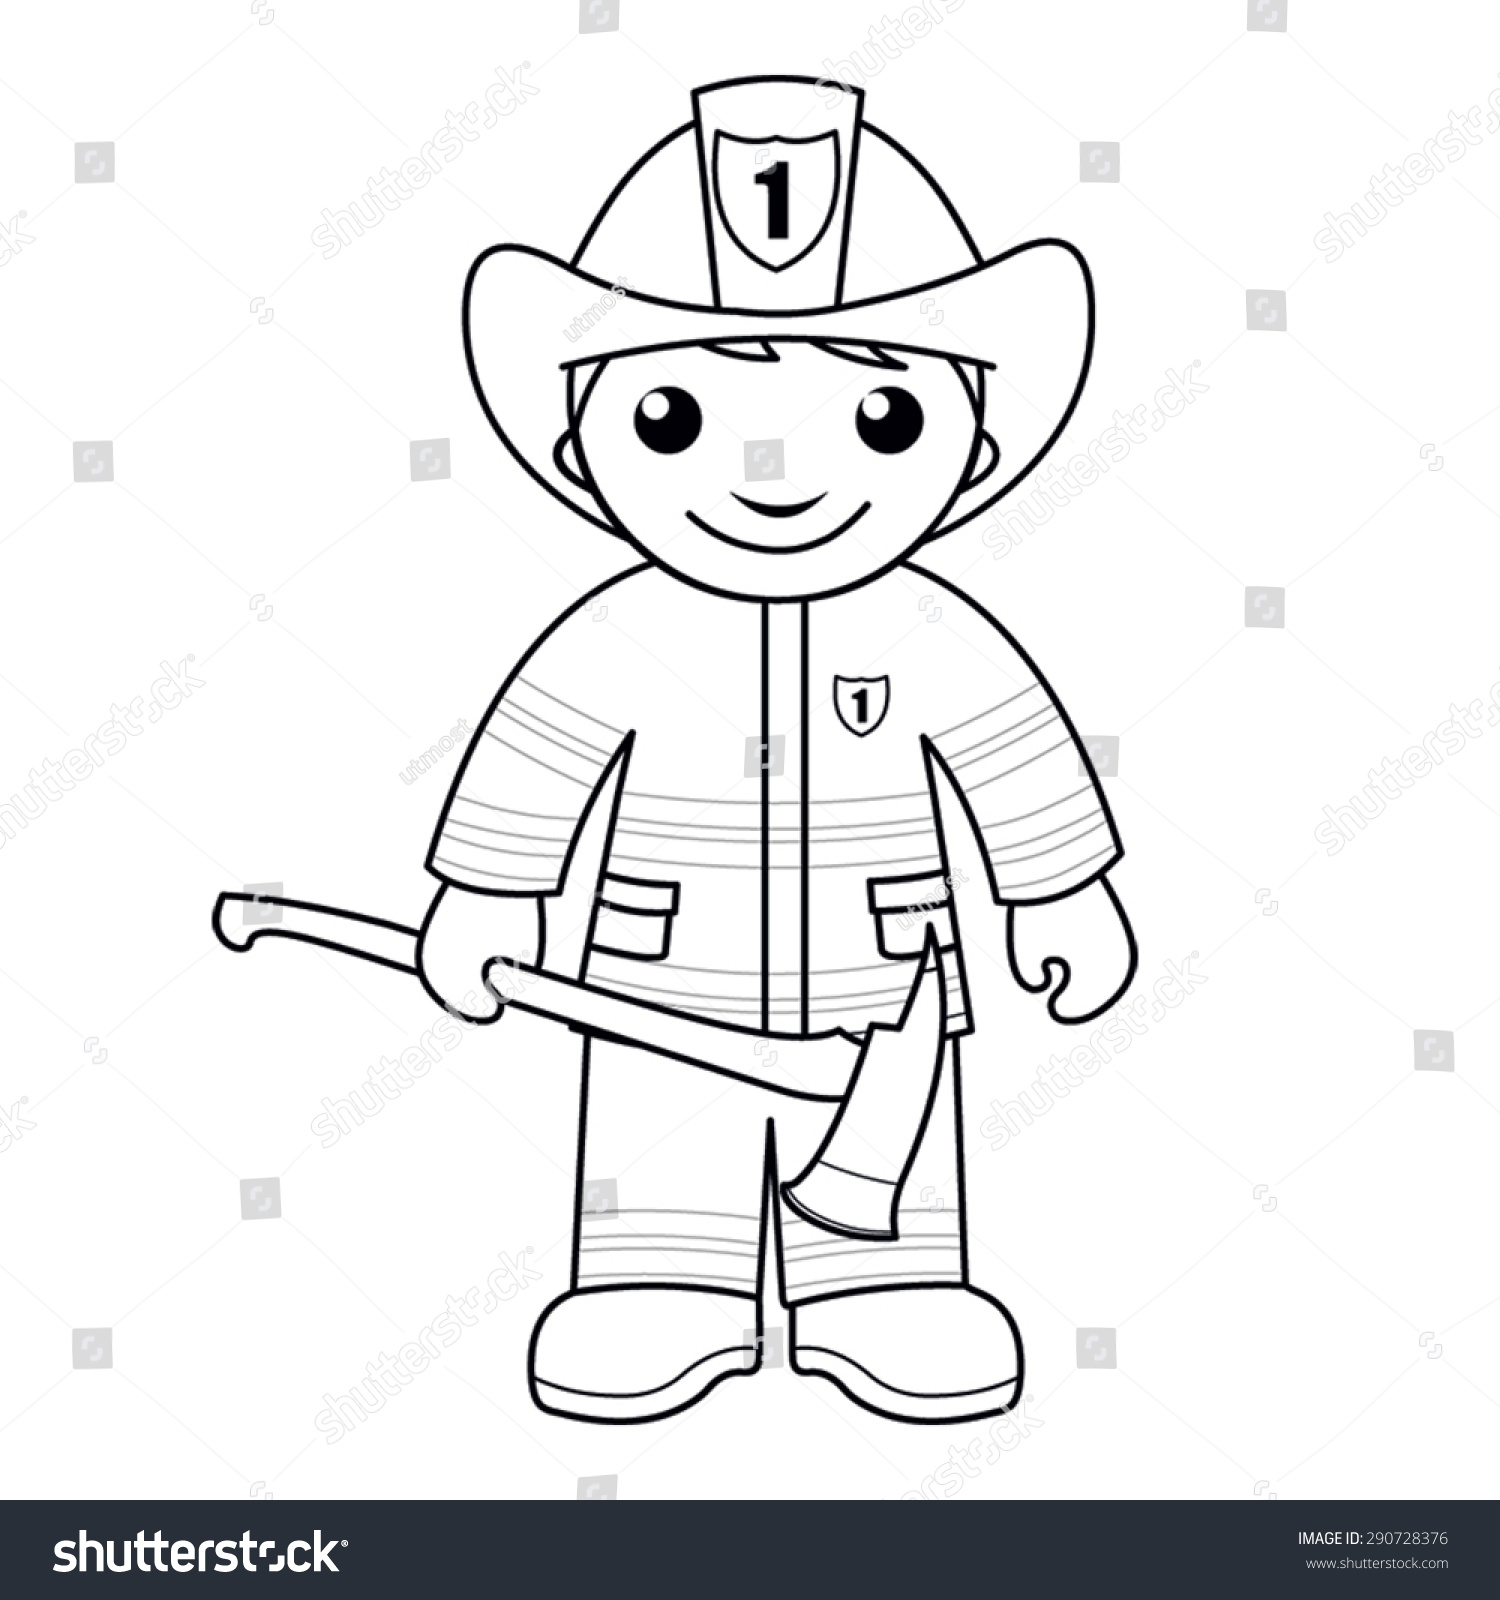 fire fighter outline 3050 best firefighter free vector art downloads from the vecteezy community  firefighter free vector art licensed under creative commons, open source, and  more  sketch style isolated vector illustration vector illustration of firefighter.